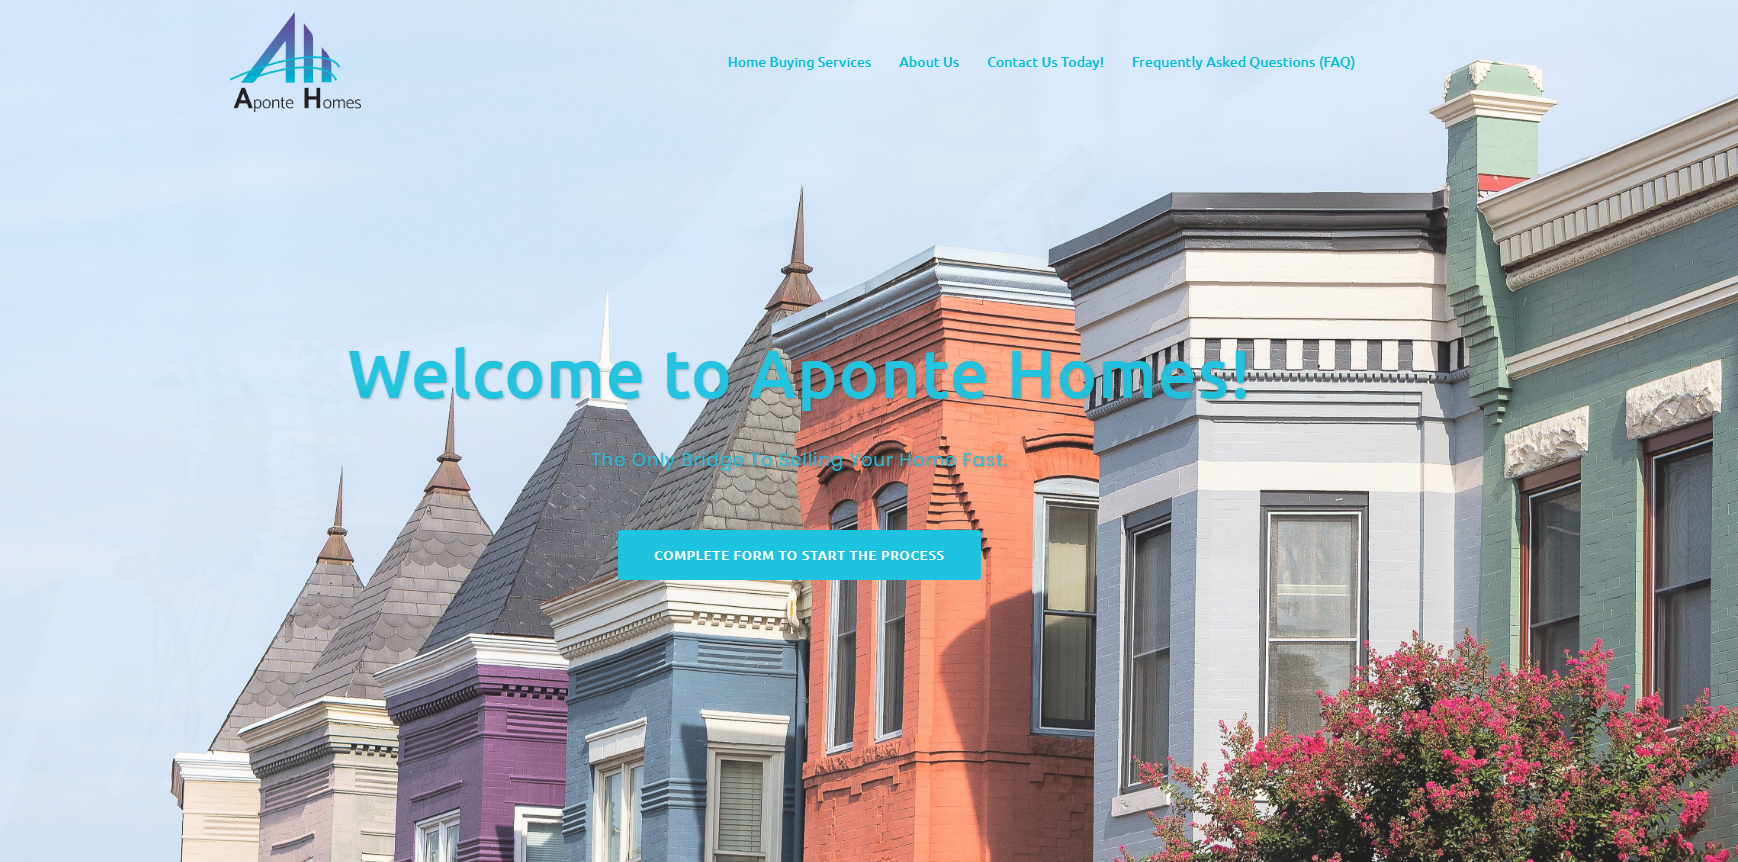 Aponte Homes Website